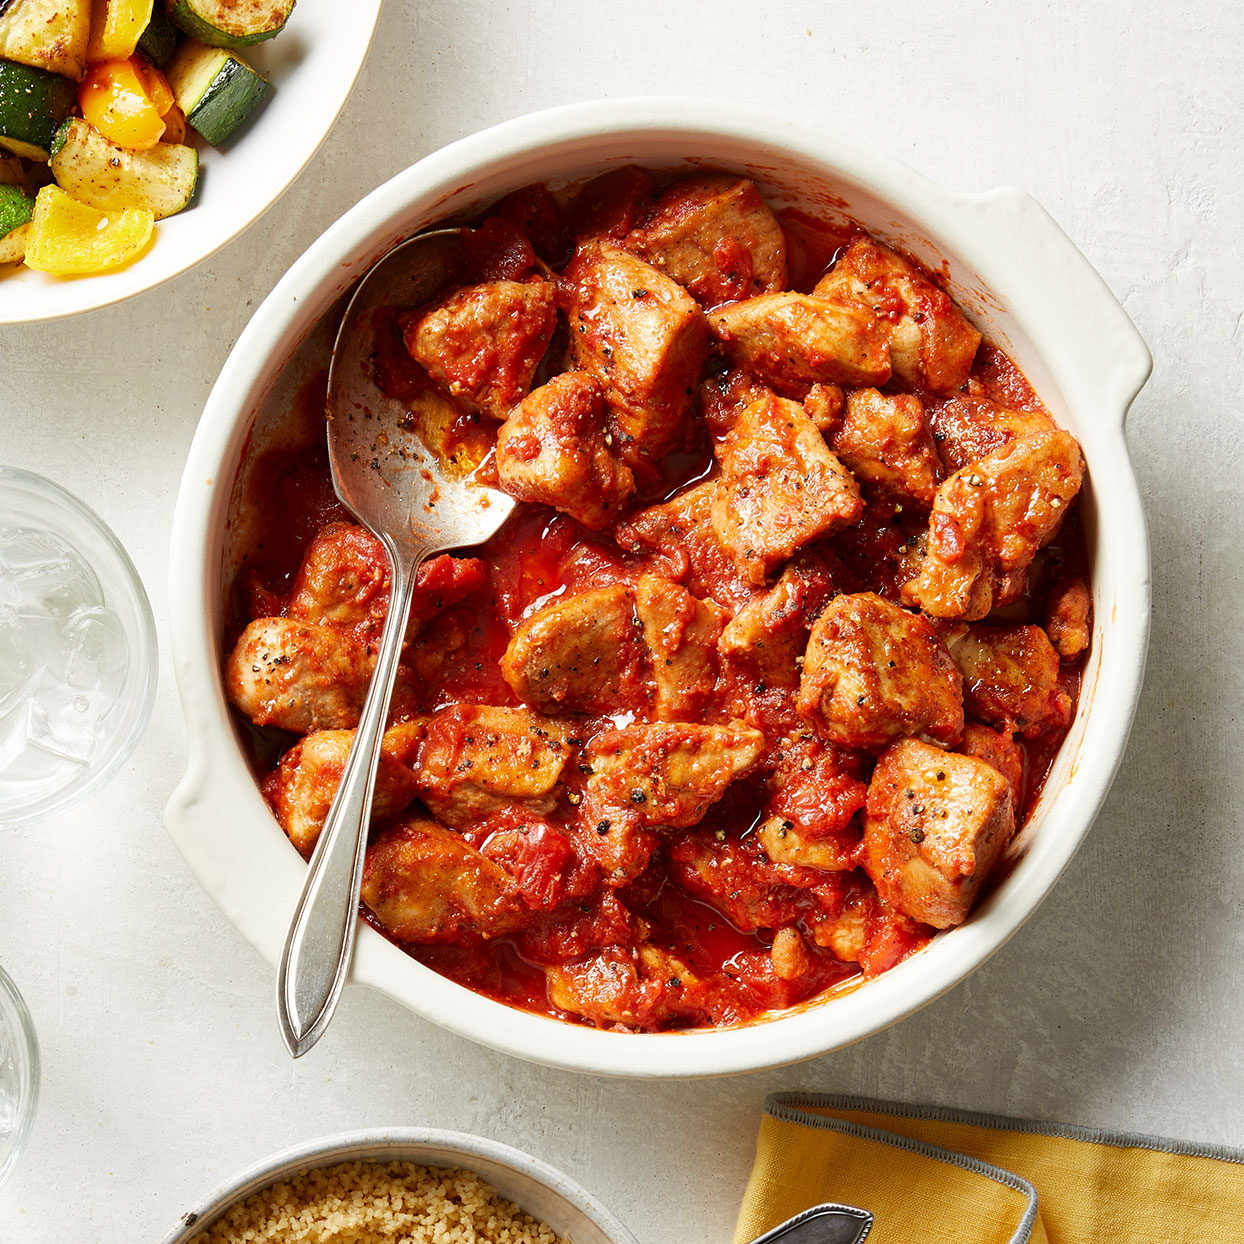 This Moroccan chicken stew is inspired by a traditional tagine, a dish which takes its name from the pottery vessel it's made in (a skillet works here). Serve with a side of roasted vegetables and whole-wheat couscous, if desired. Source: Diabetic Living Magazine, Spring 2020